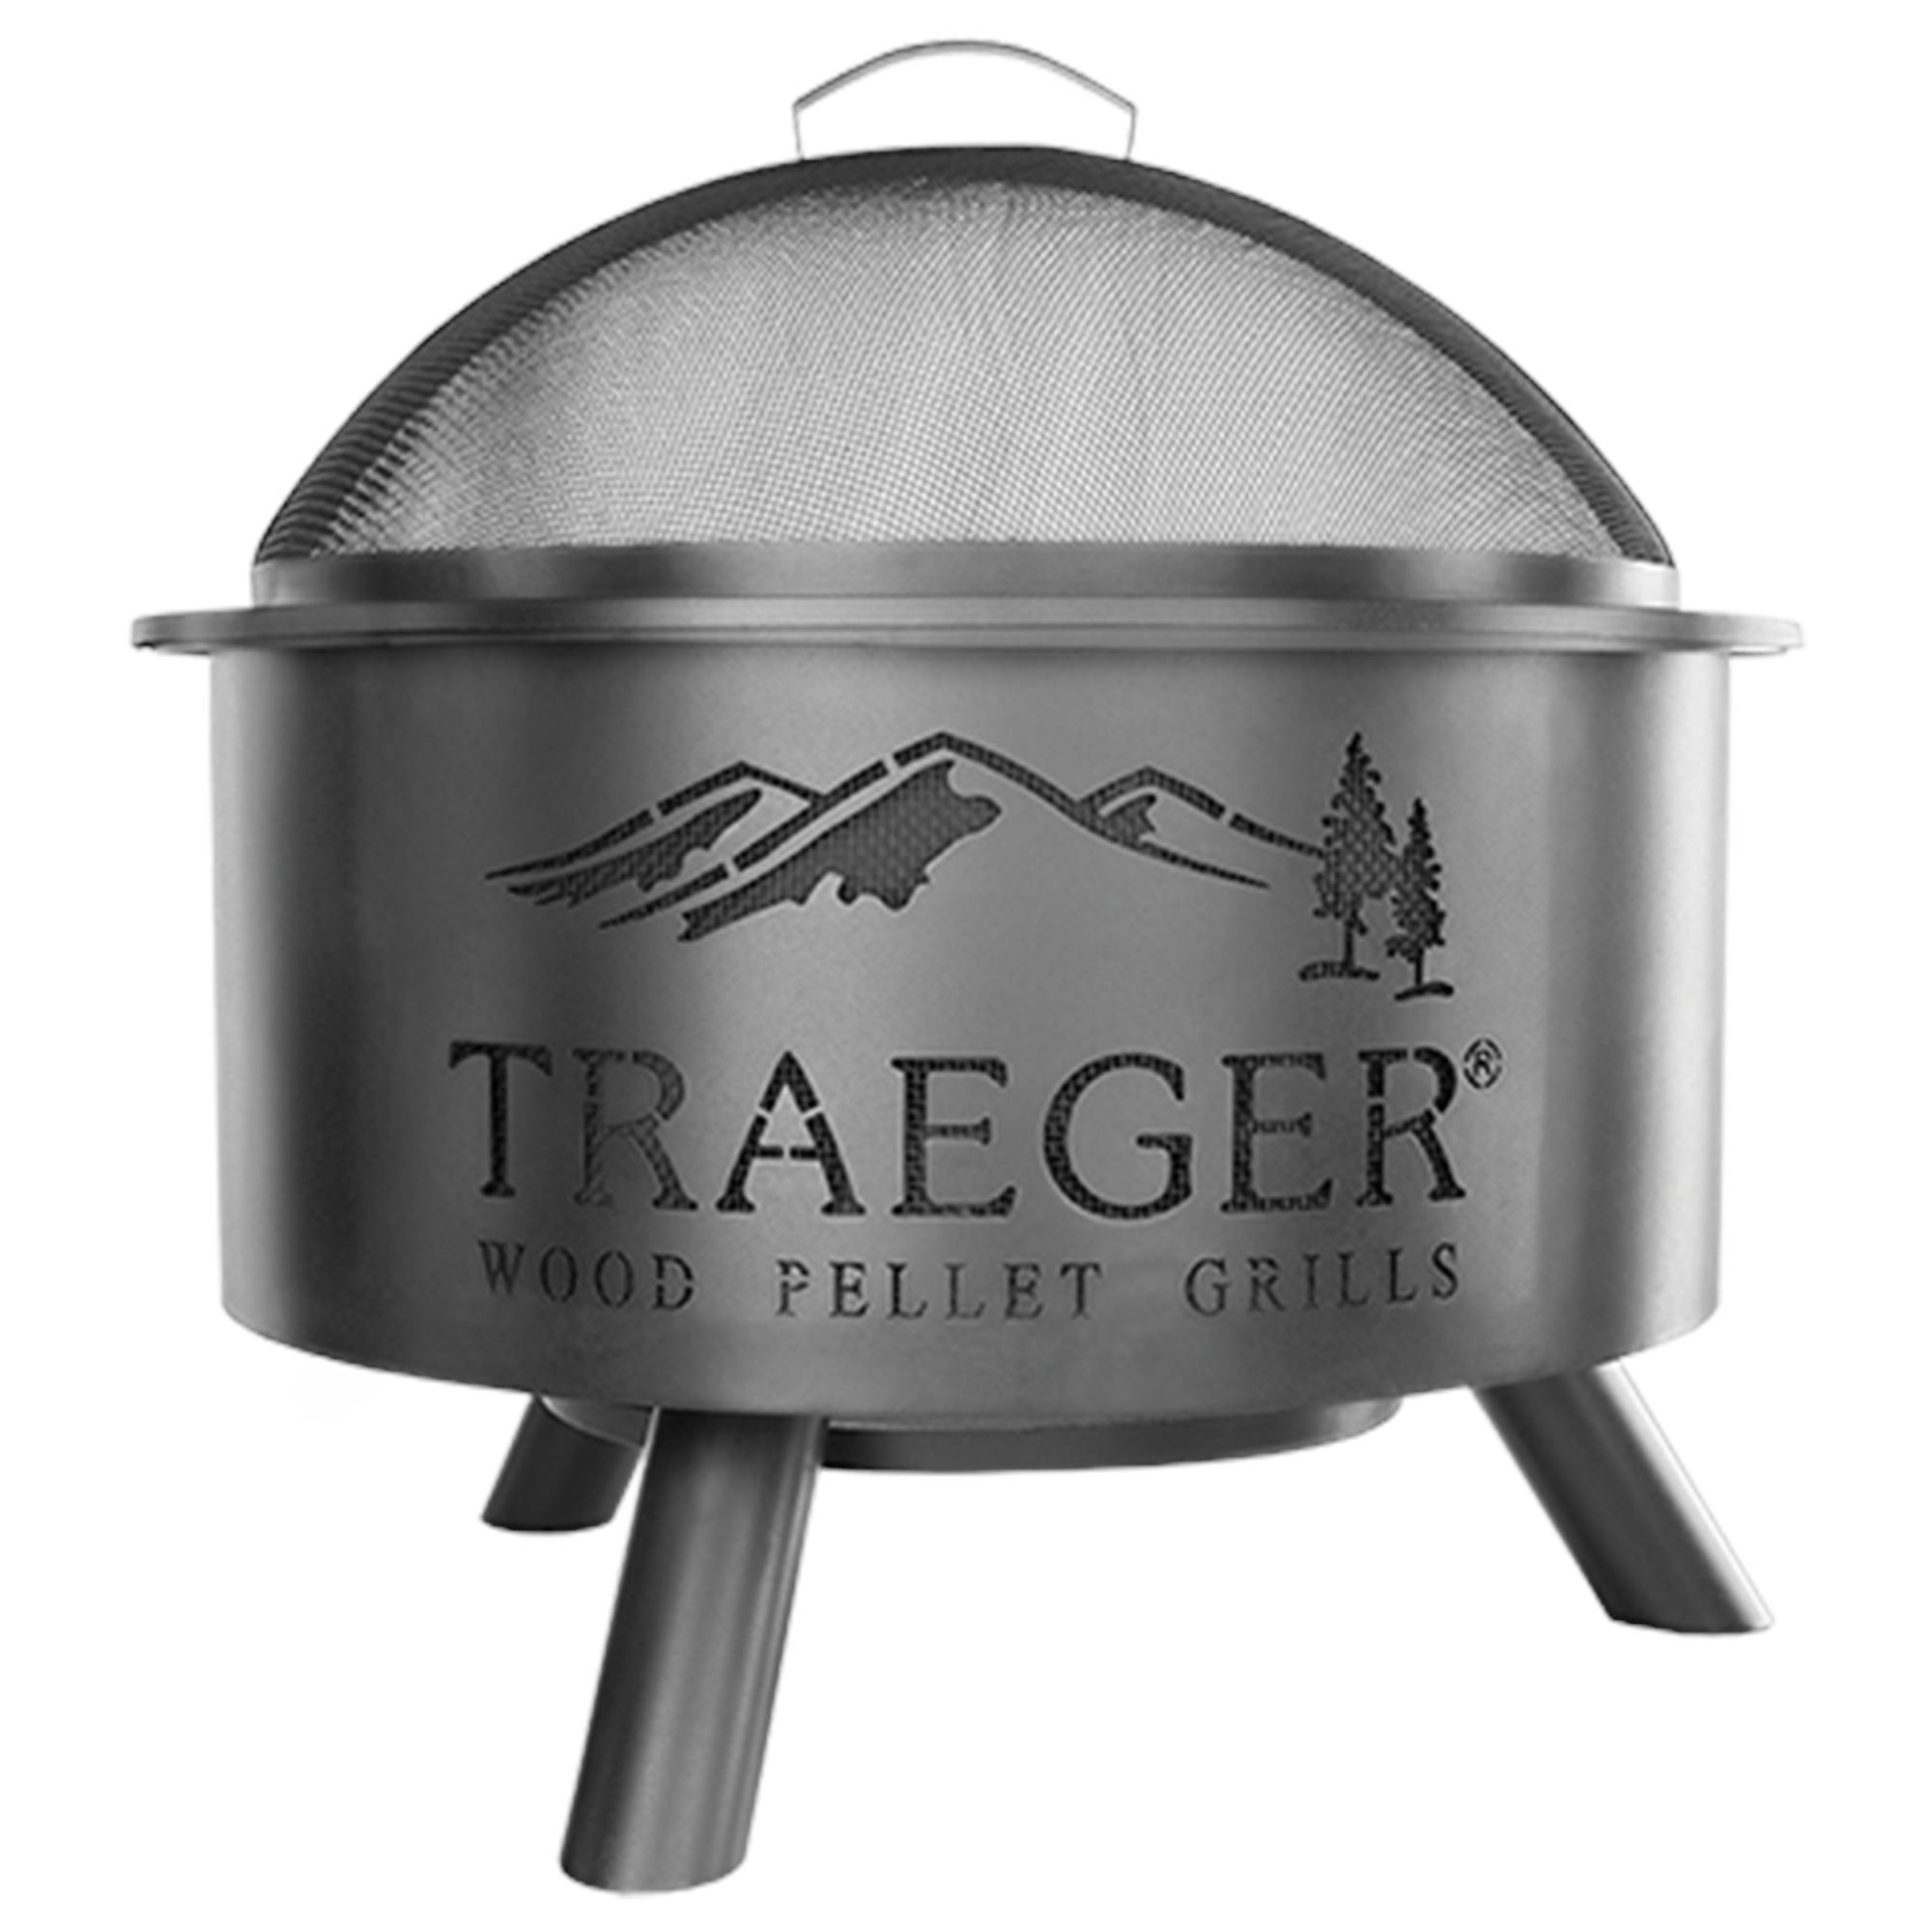 An image of Traeger Cooking Accessories - Outdoor Fire Pit